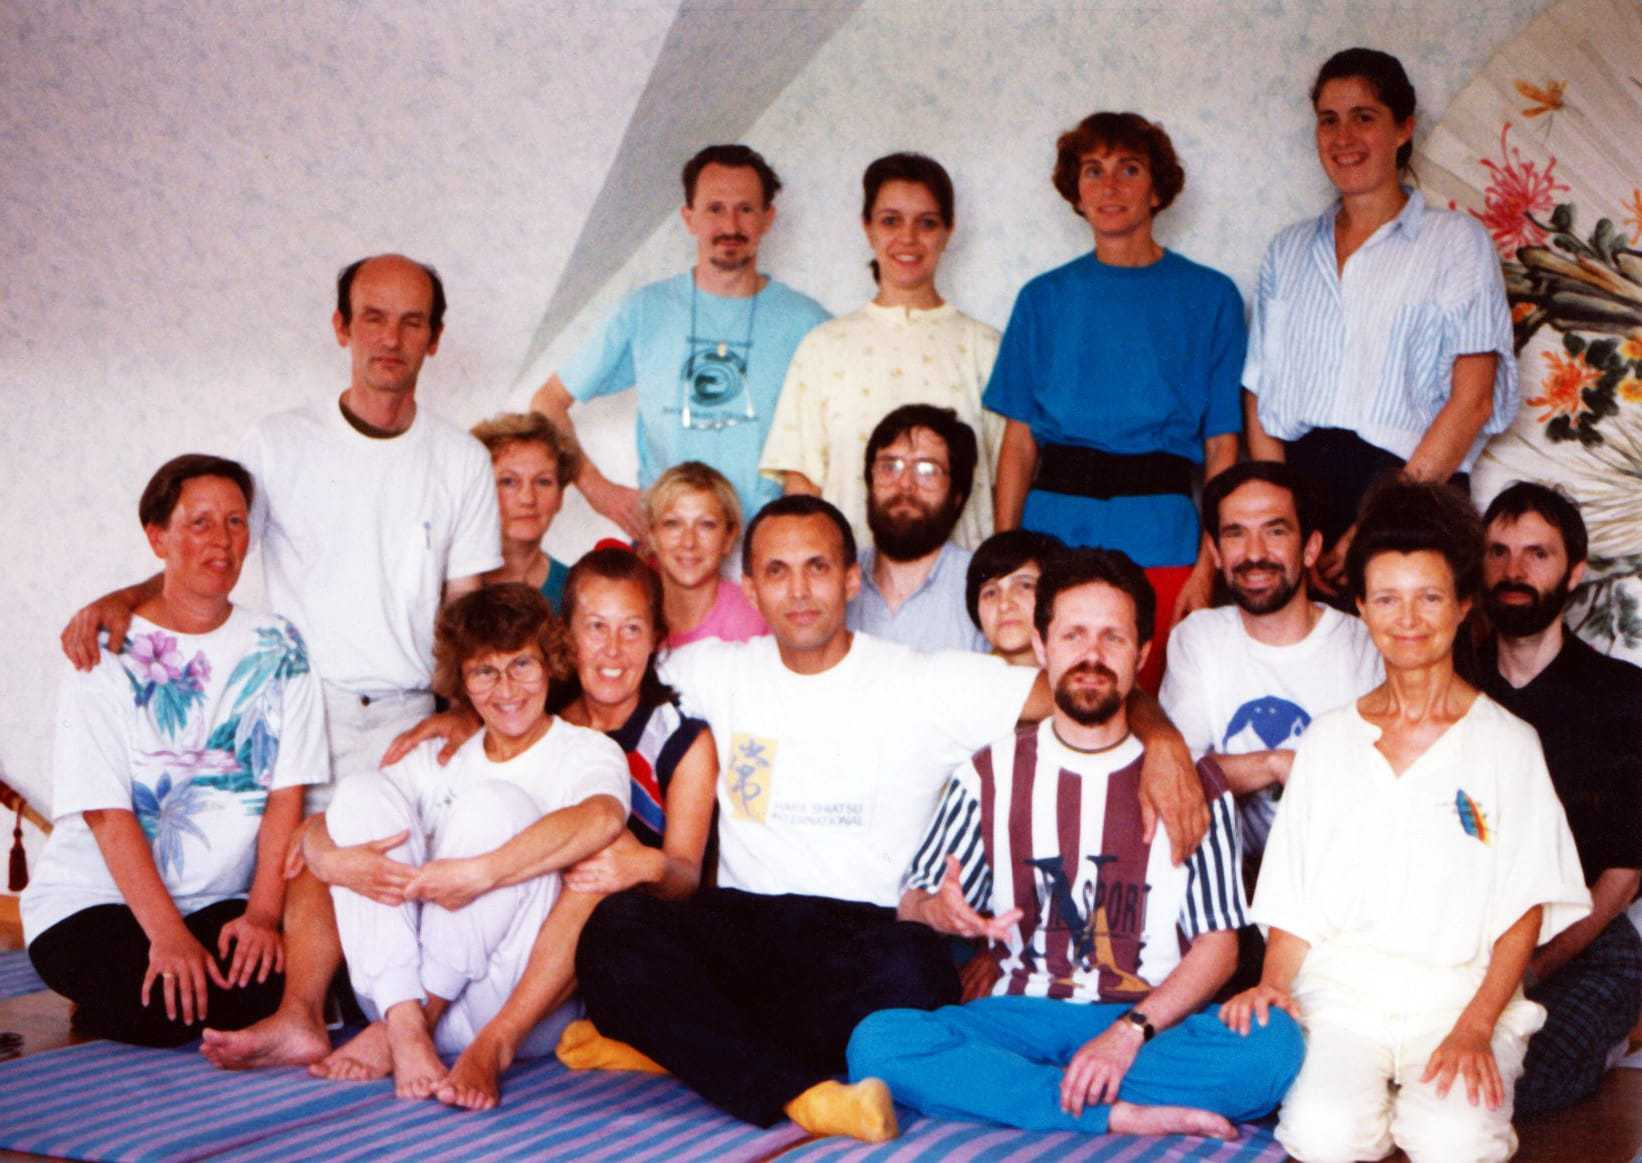 shiatsu belgium 80s on Rex Lassalle's website